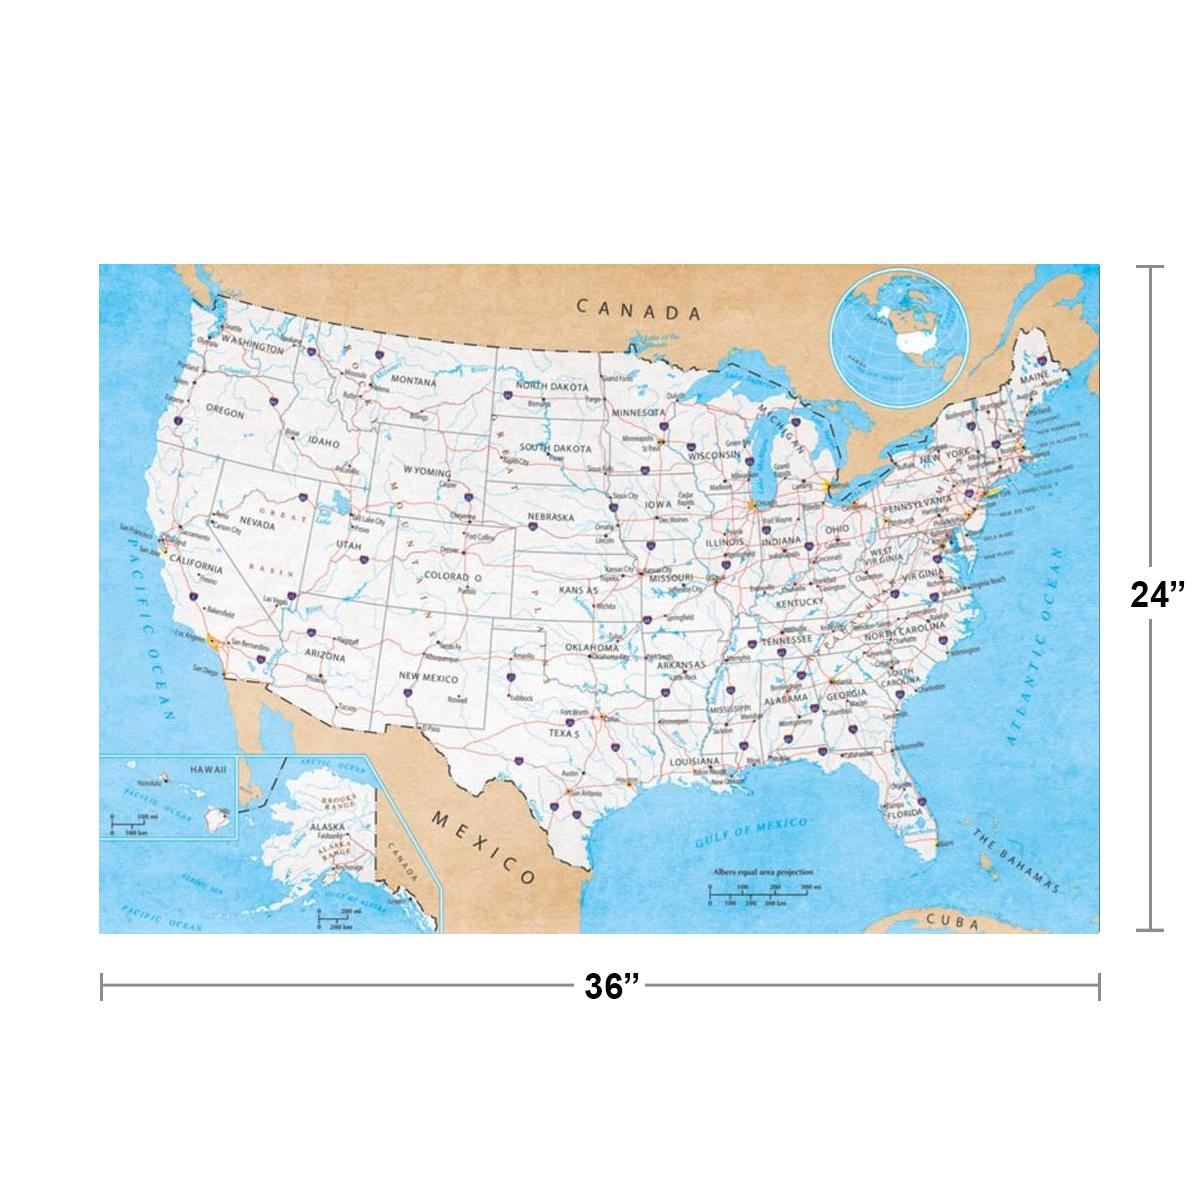 A new atlas gives a sense of what's truly happening in america. Map Of United States Usa Roads Highways Interstate System Travel Decorative Classroom Cool Wall Decor Art Print Poster 36x24 Walmart Com